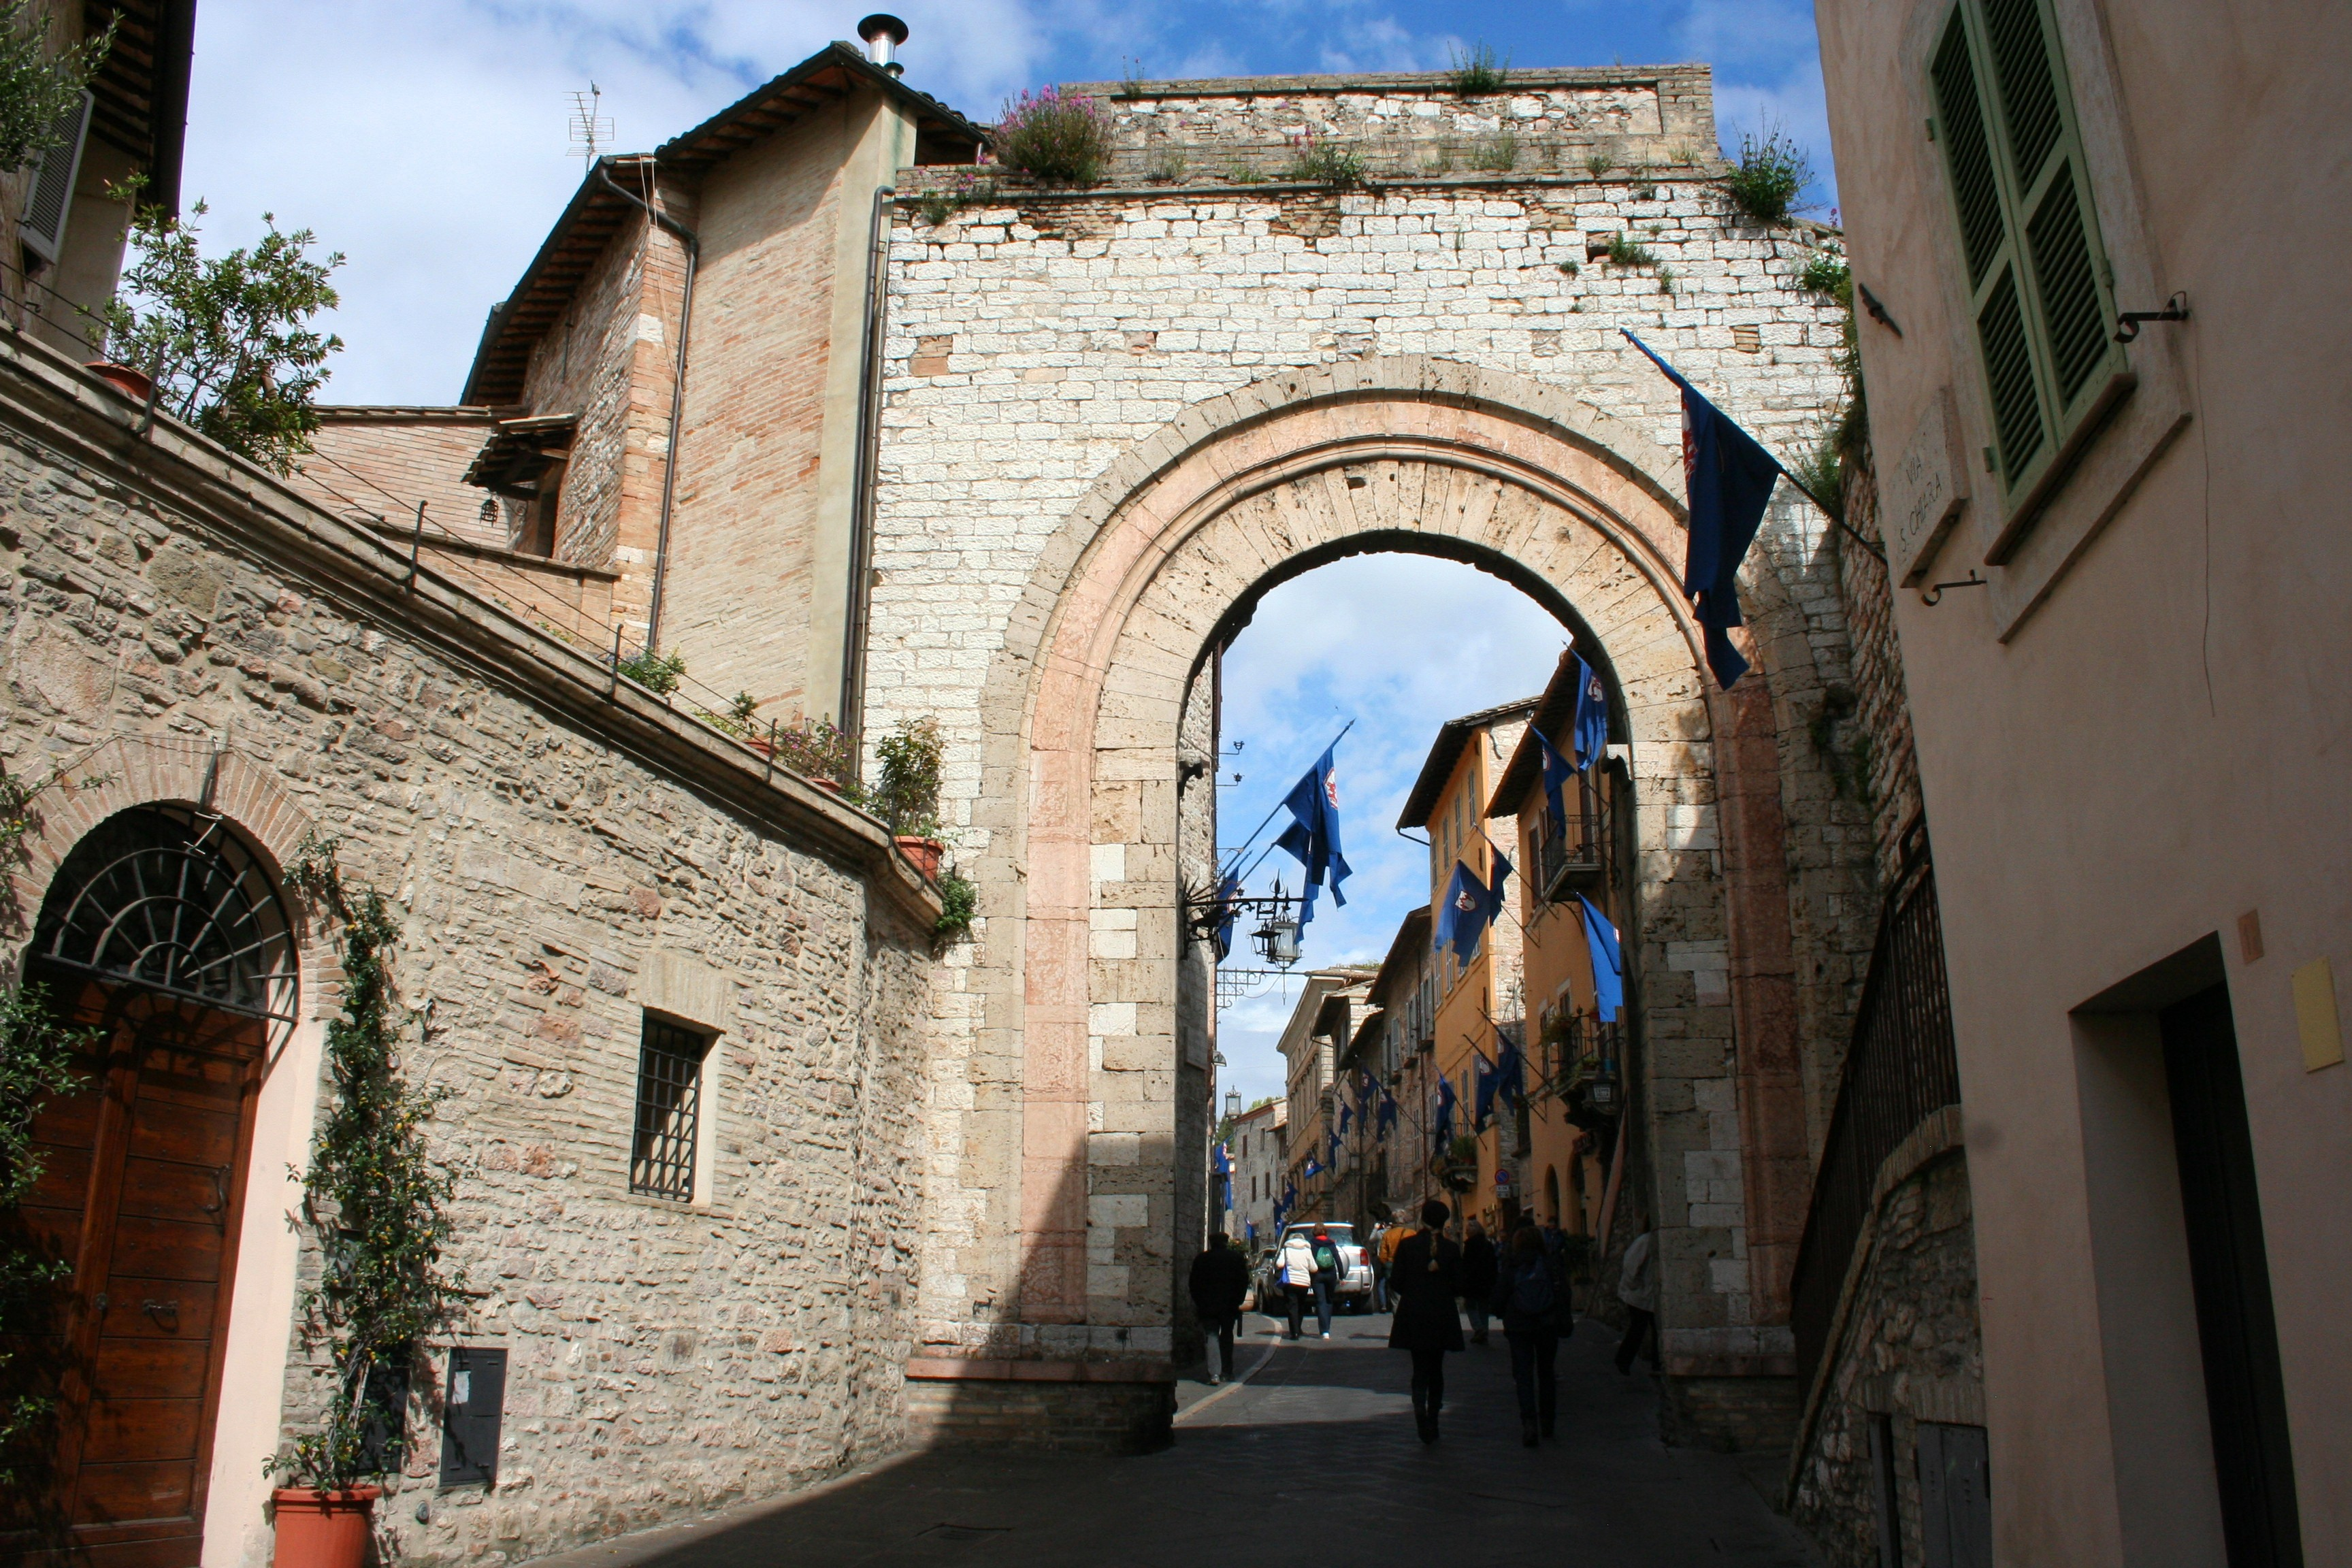 Entrance to Assisi